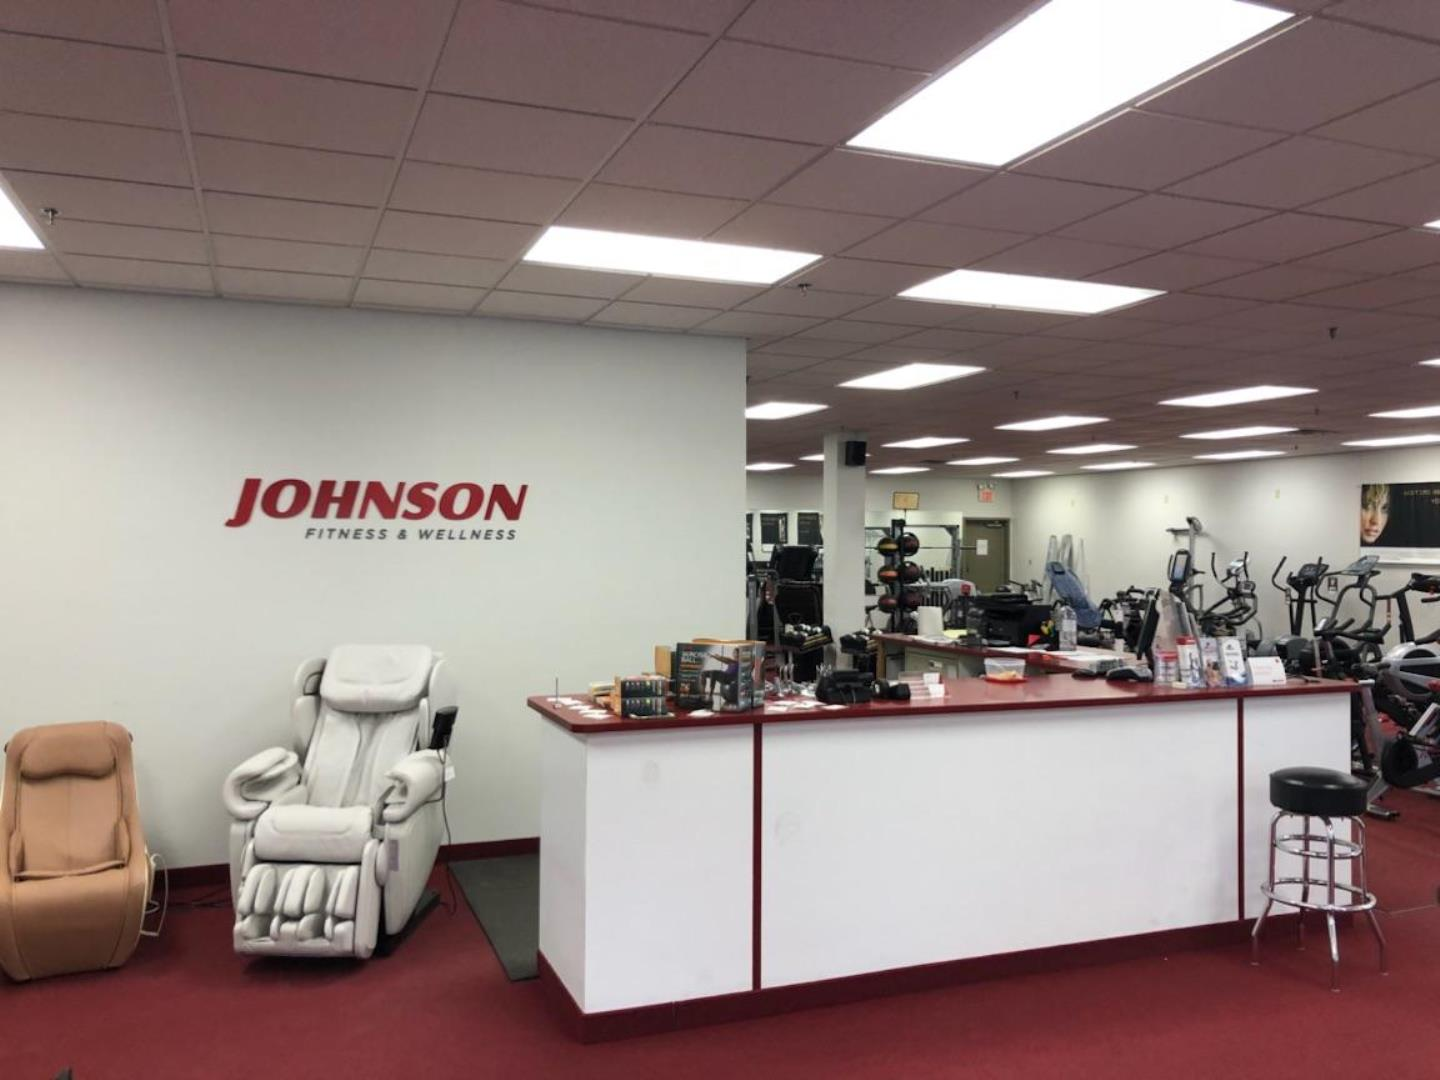 Johnson Fitness & Wellness - Hermantown, MN